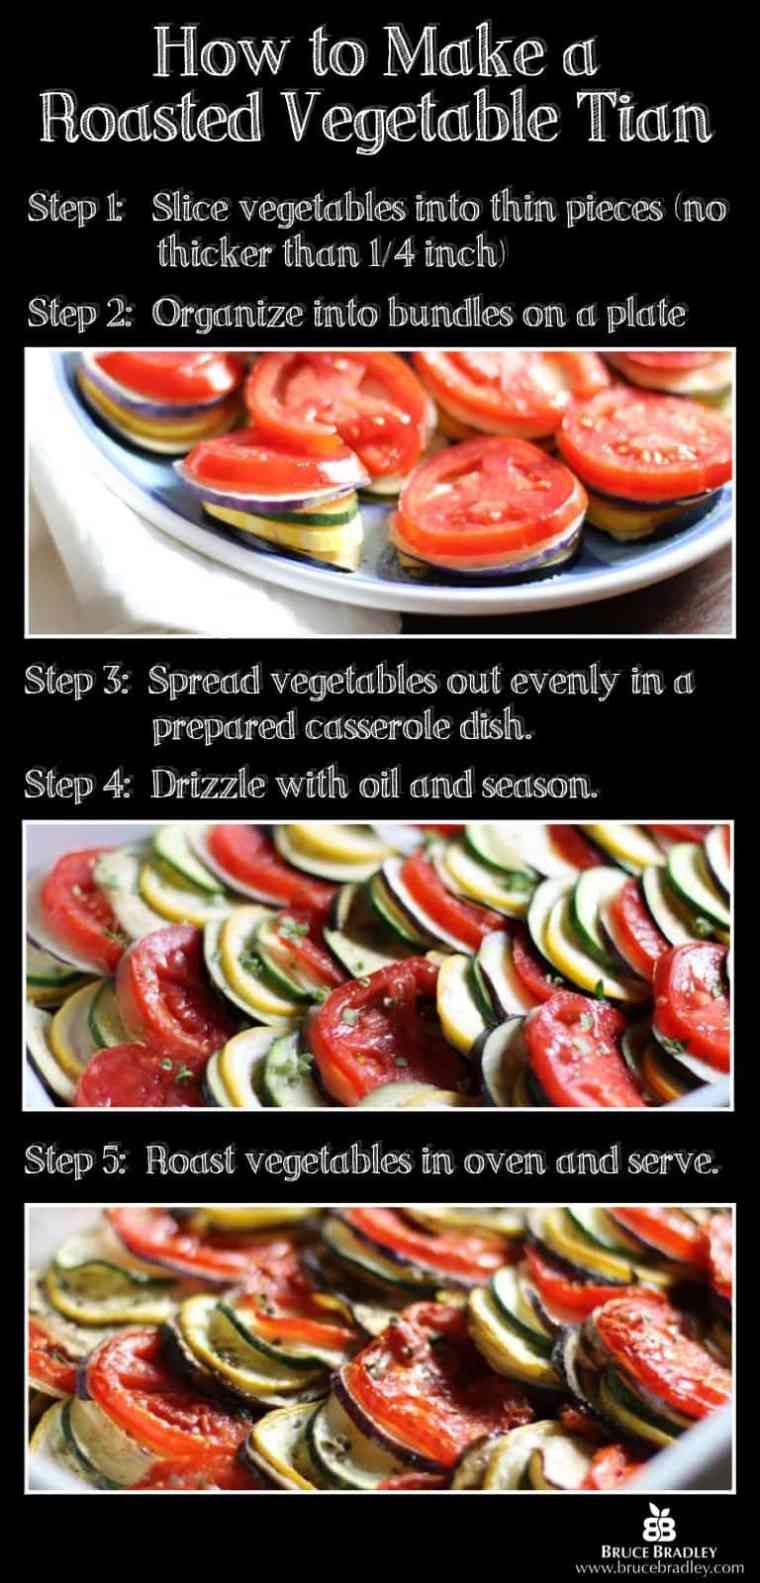 How to make a vegetable tian in 5 easy steps!